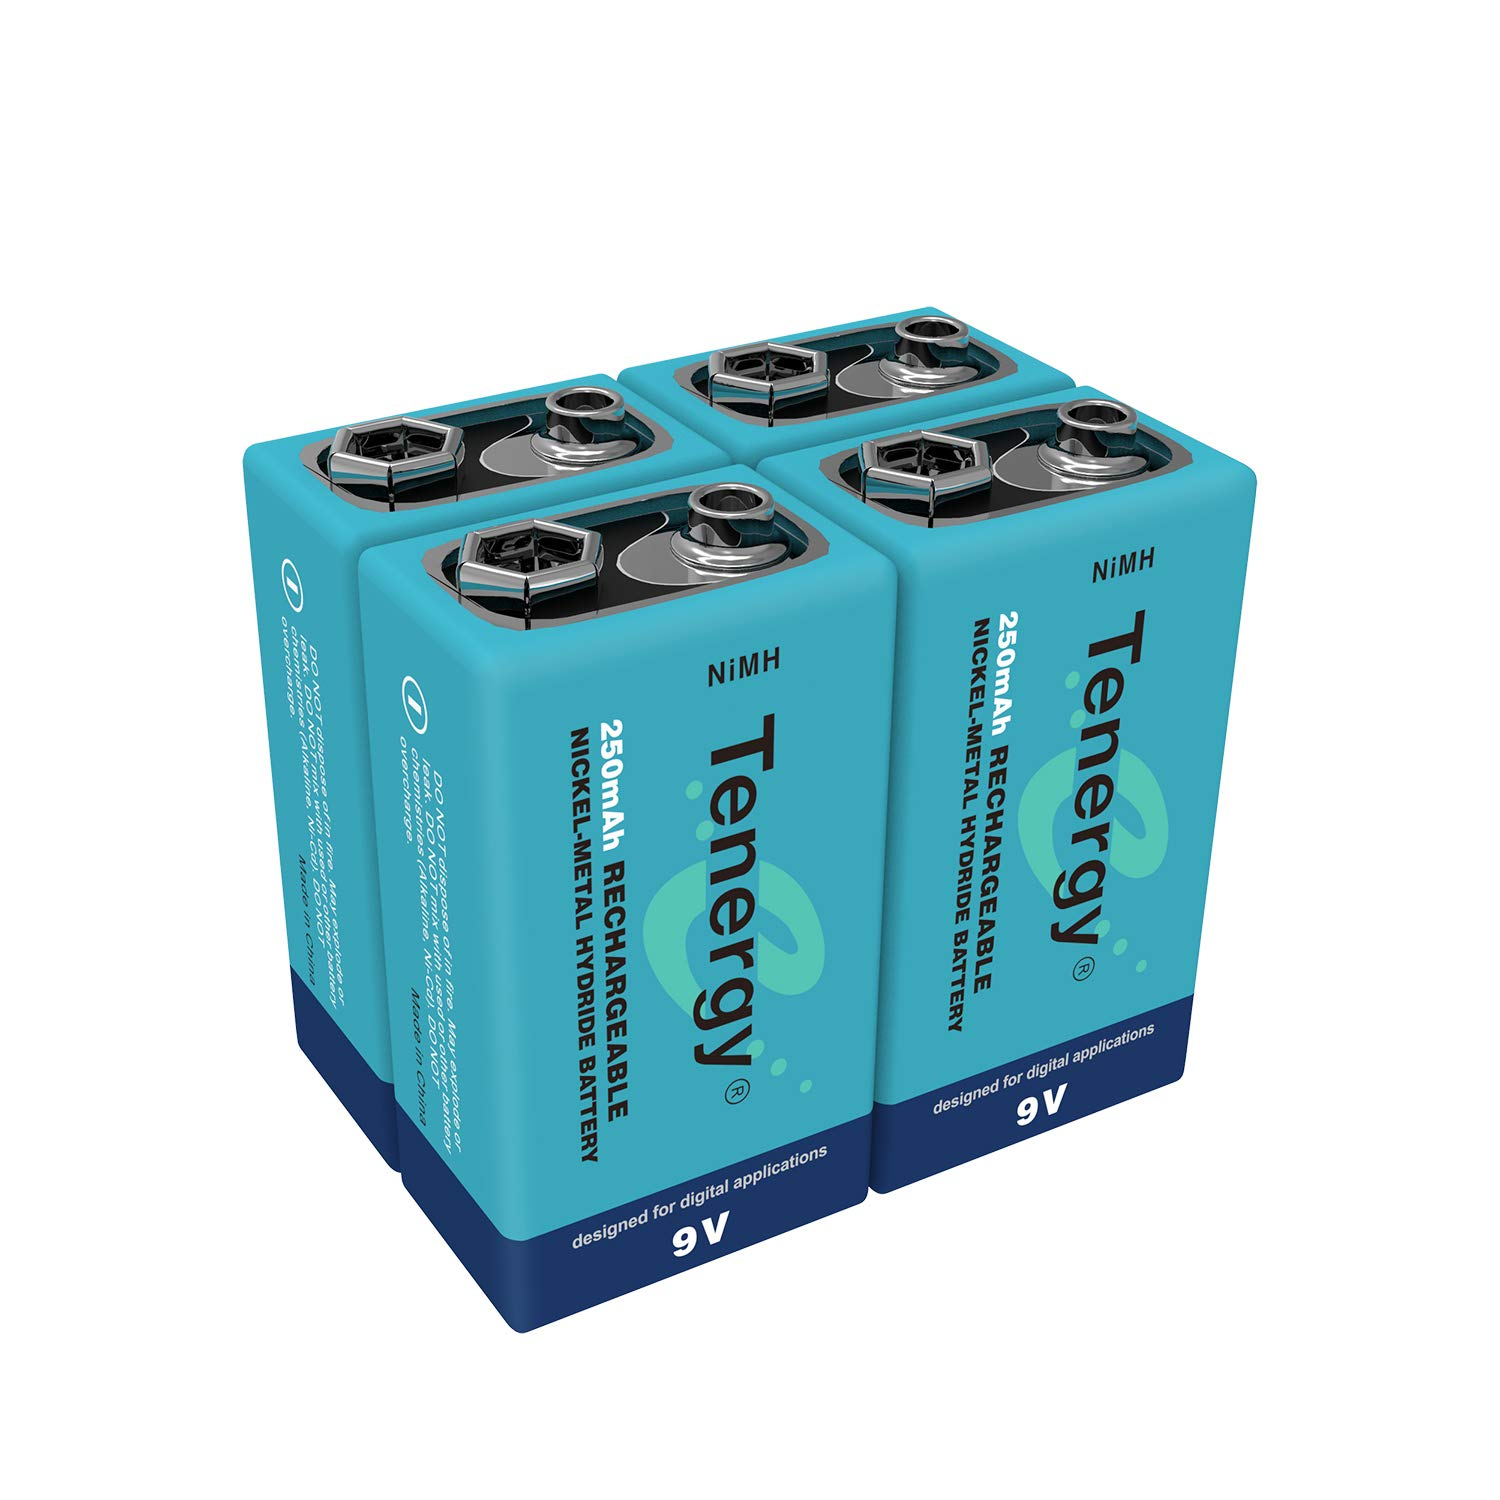 4 pieces of 9V 250mAh NiMH high capacity rechargeable Battery [Electronics] Tenergy 10420